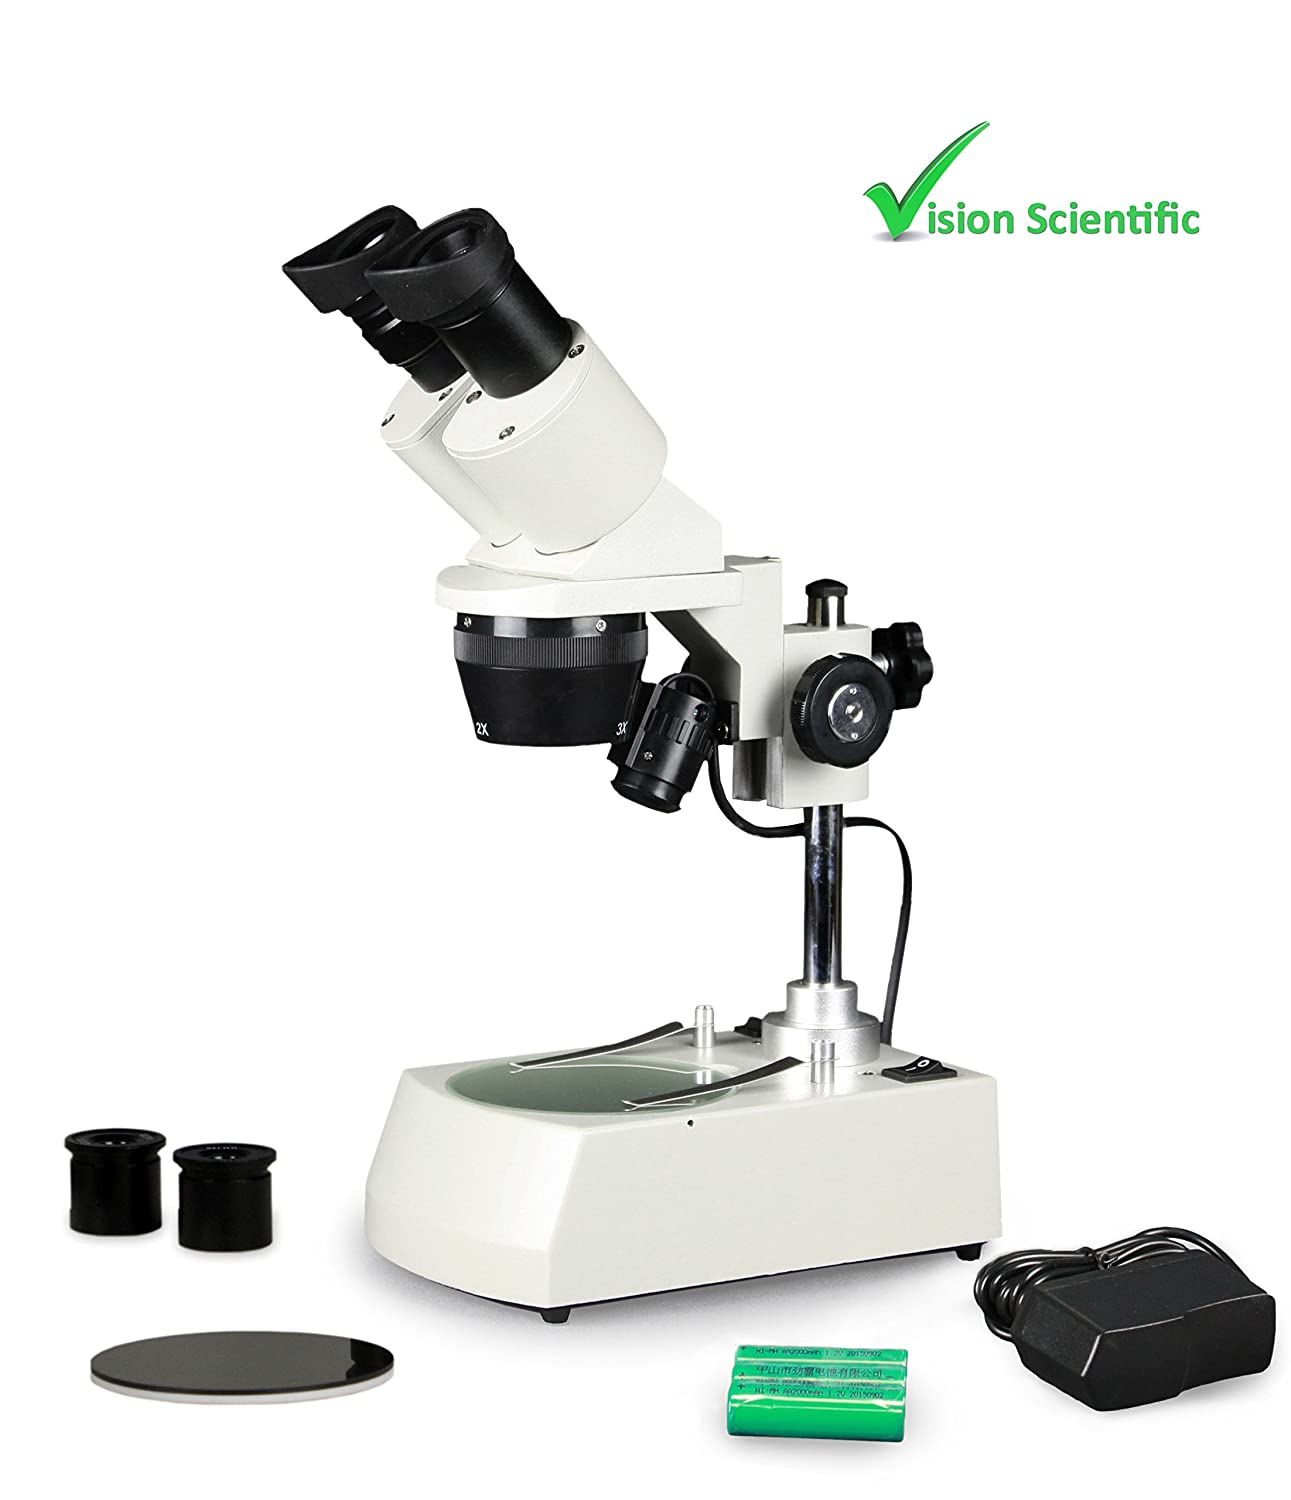 10x Vision Scientific VMS0002-RC-123-ES2 Tri-Power Binocular Stereo Microscope Cordless 1x Pair of 10x and Pair of 20x WF Eyepieces 20x 60x Magnification 30x 2xand 3X Objectives 40x